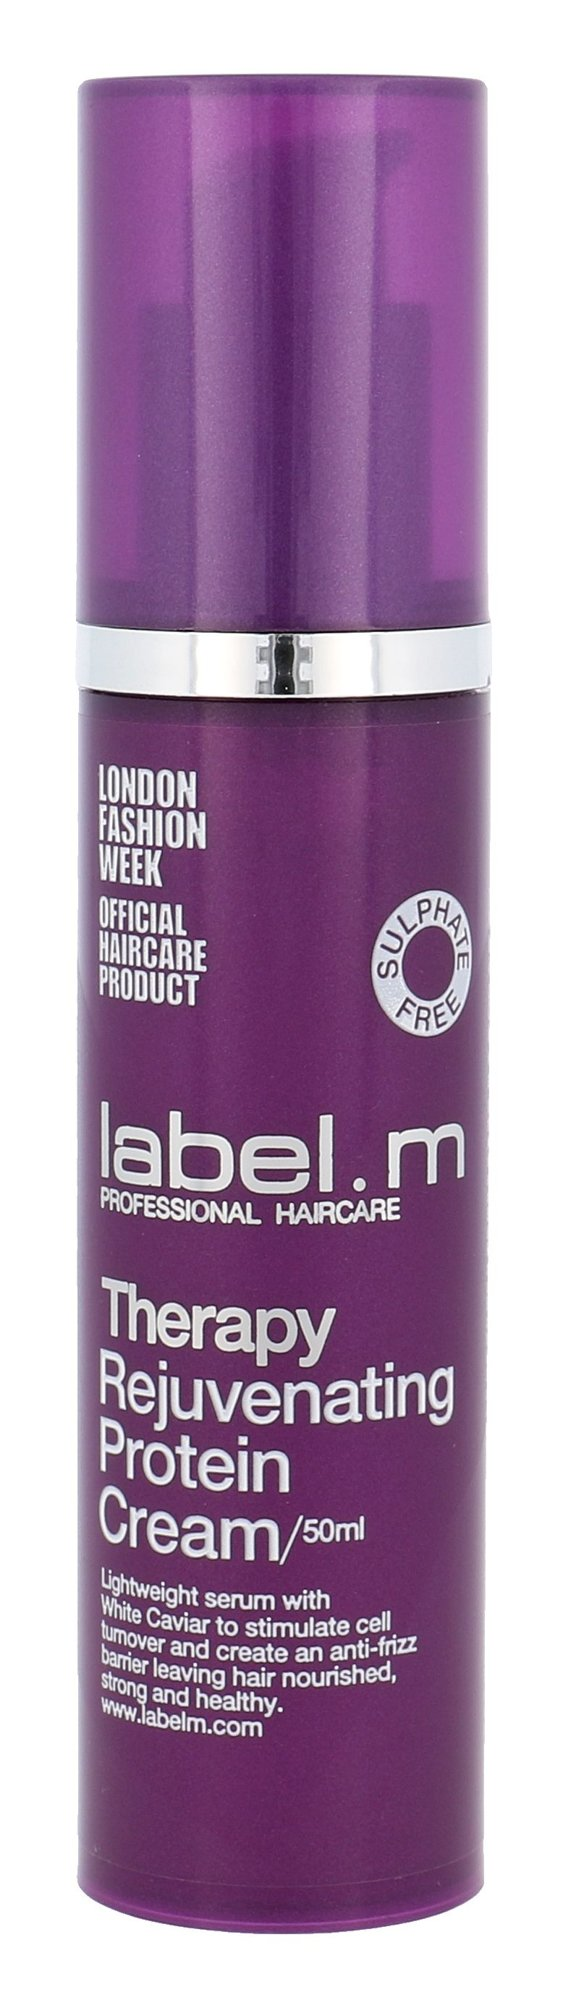 Label m Therapy Cosmetic 50ml